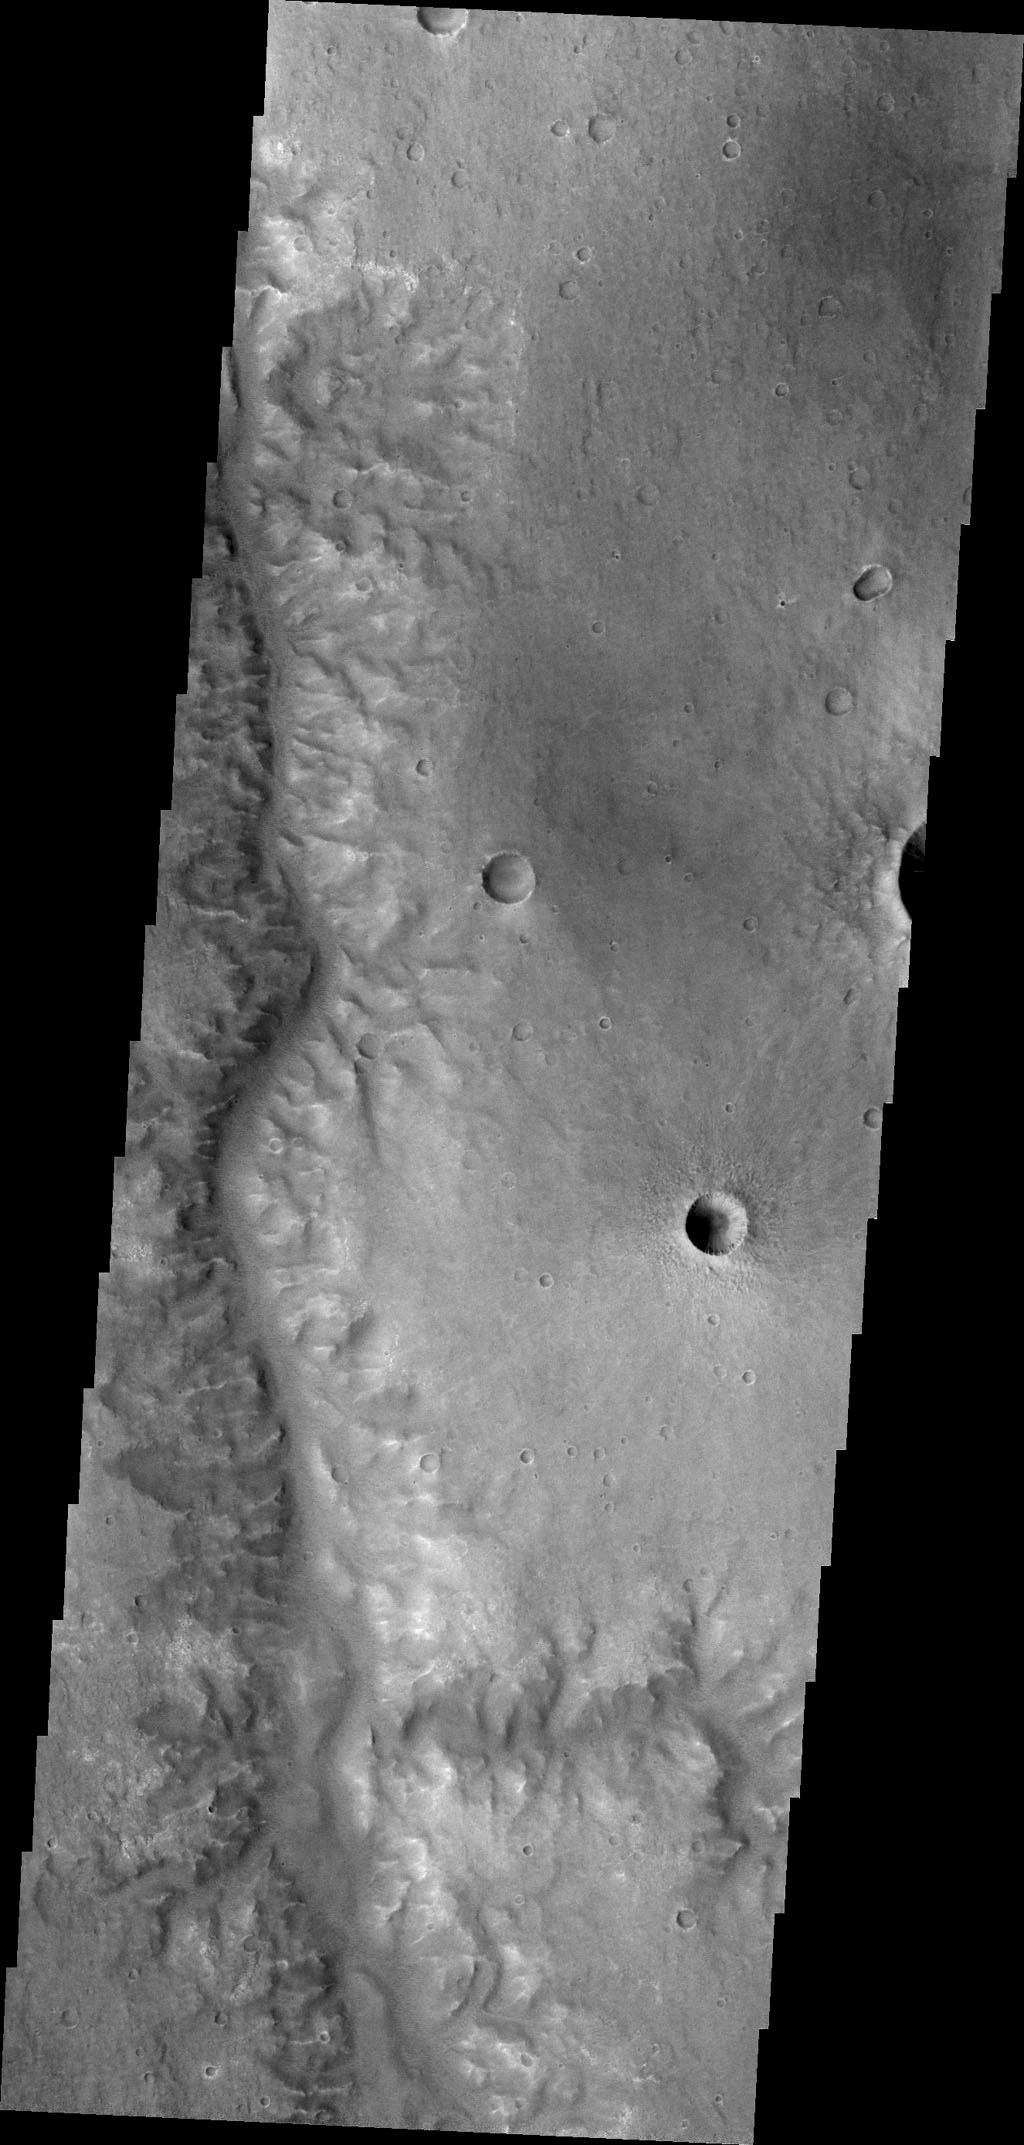 This image captured by NASA's 2001 Mars Odyssey shows unnamed channel flows northward in Margaritifer Terra.